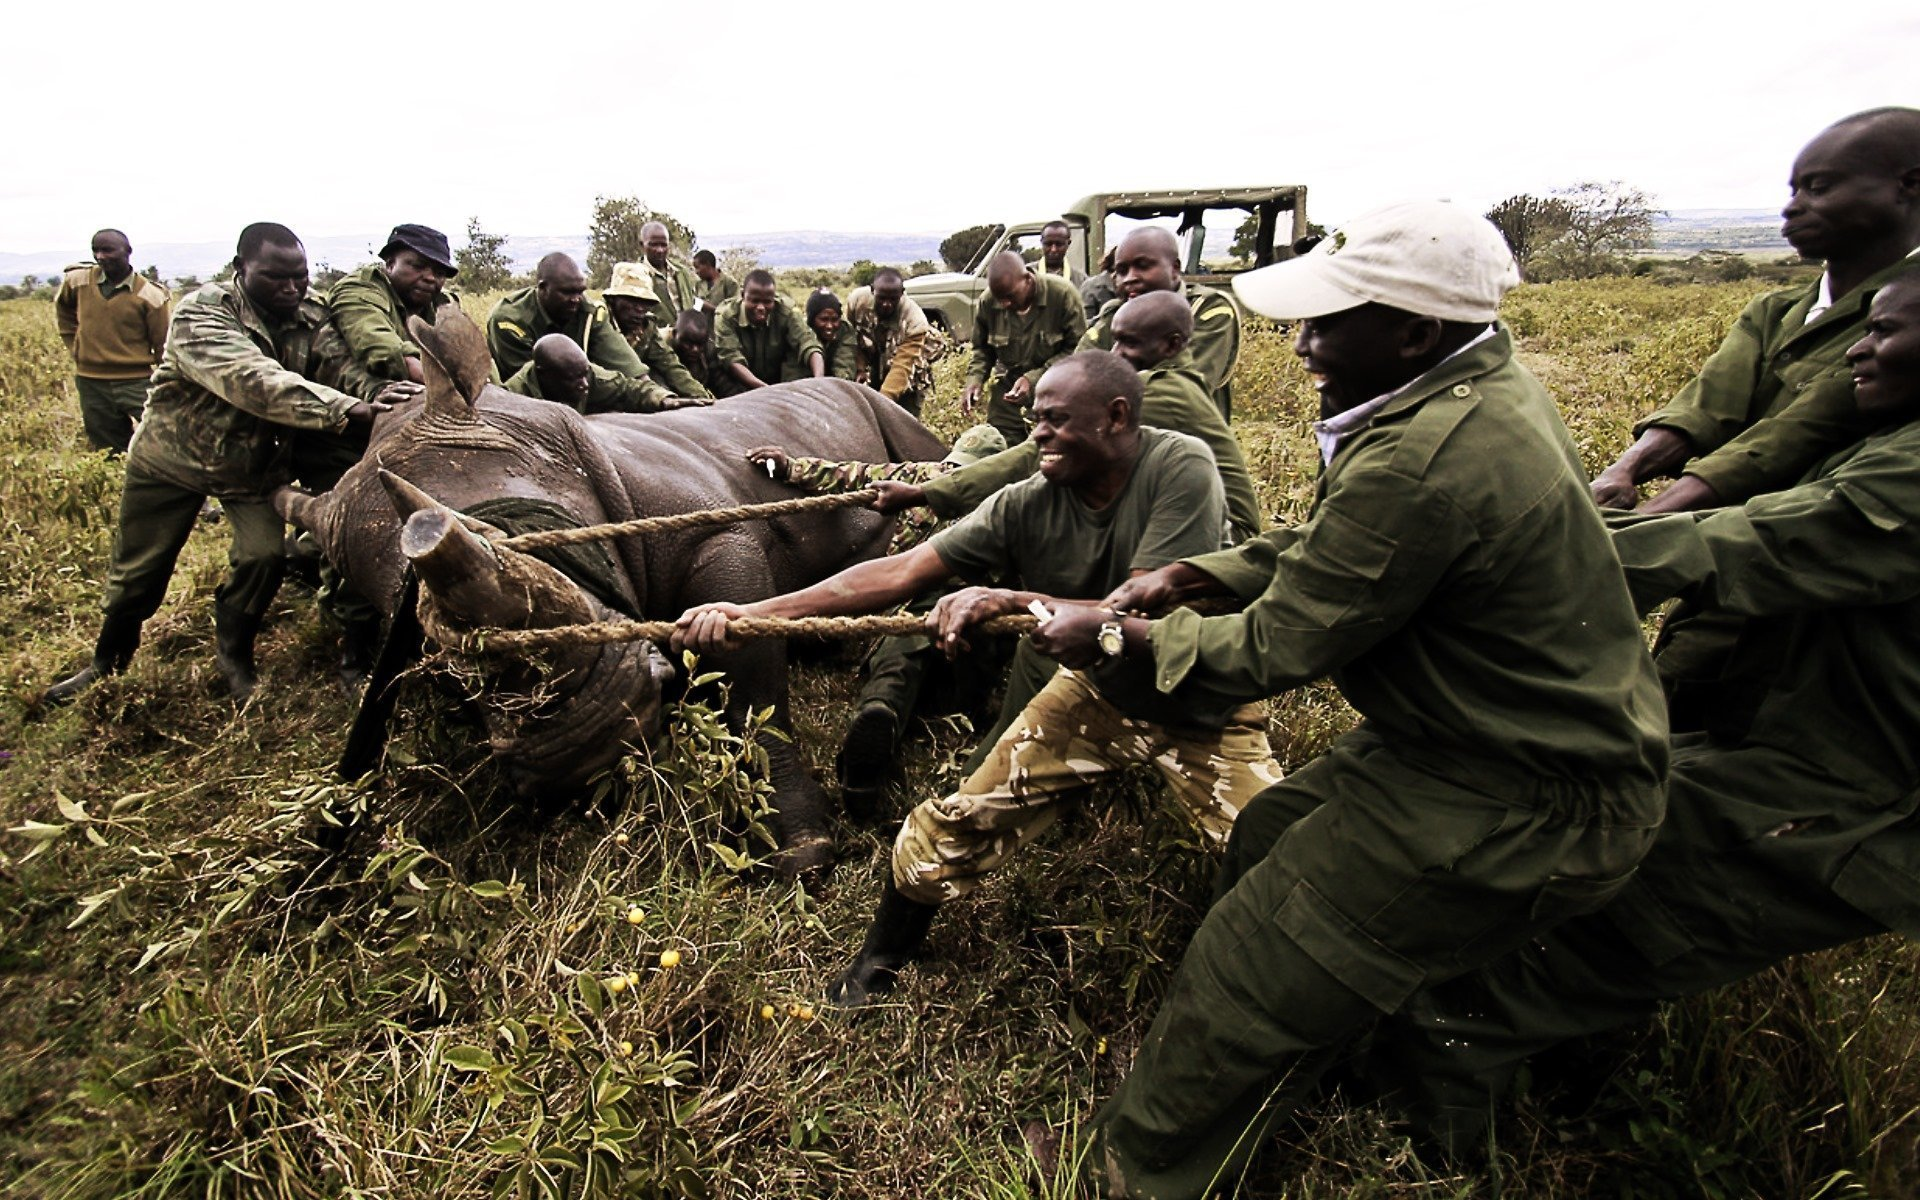 KWS starts its second elephant translocation to move 200 jumbos from Narok to the Maasai Mara National Reserve to lower human-wildlife conflict in the area.